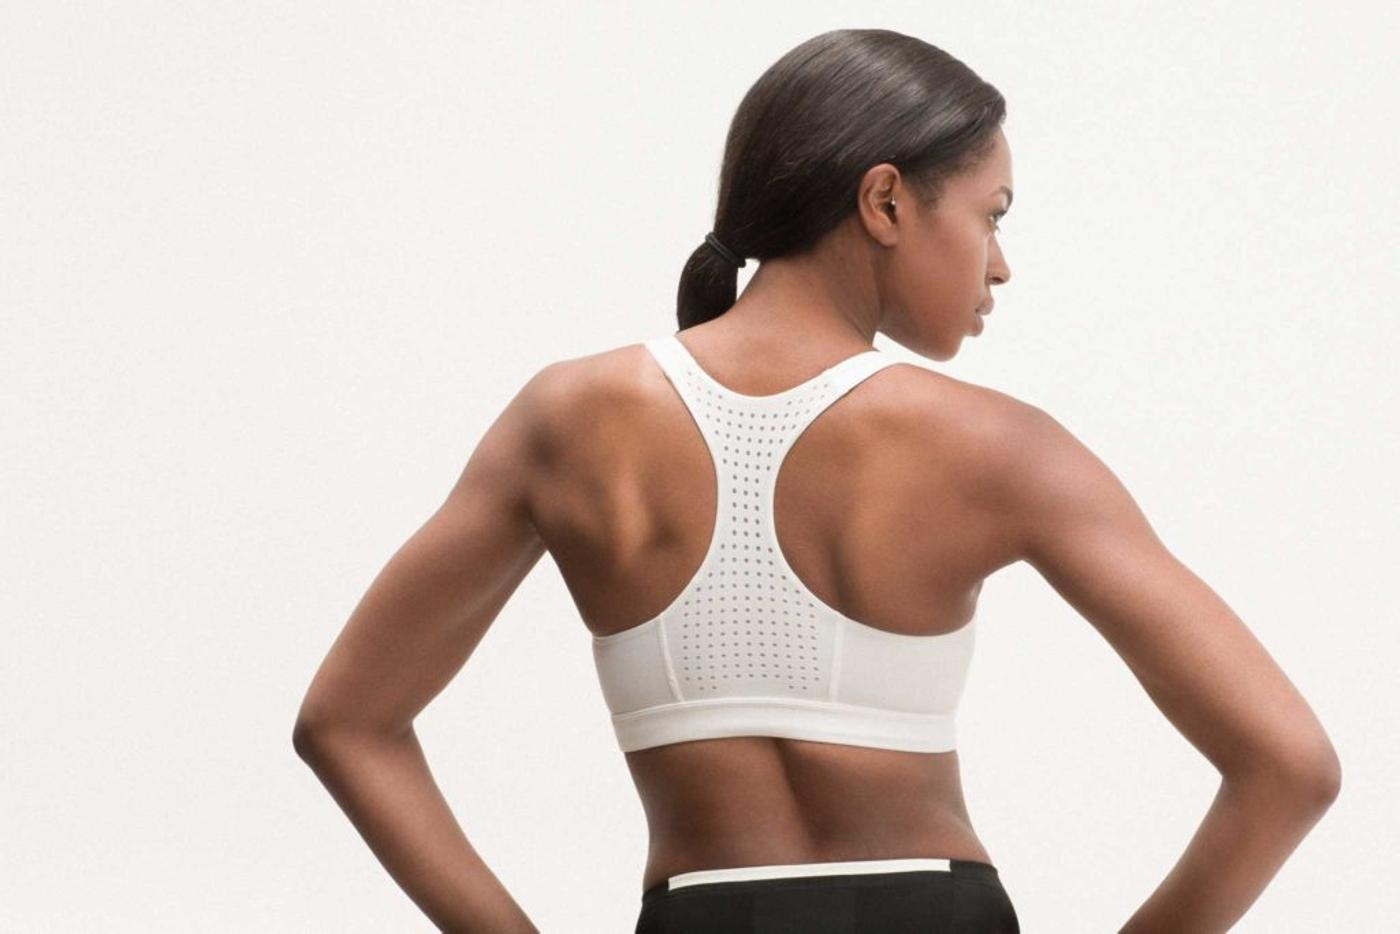 Speaking of Rapha: New Cycling Bra Line